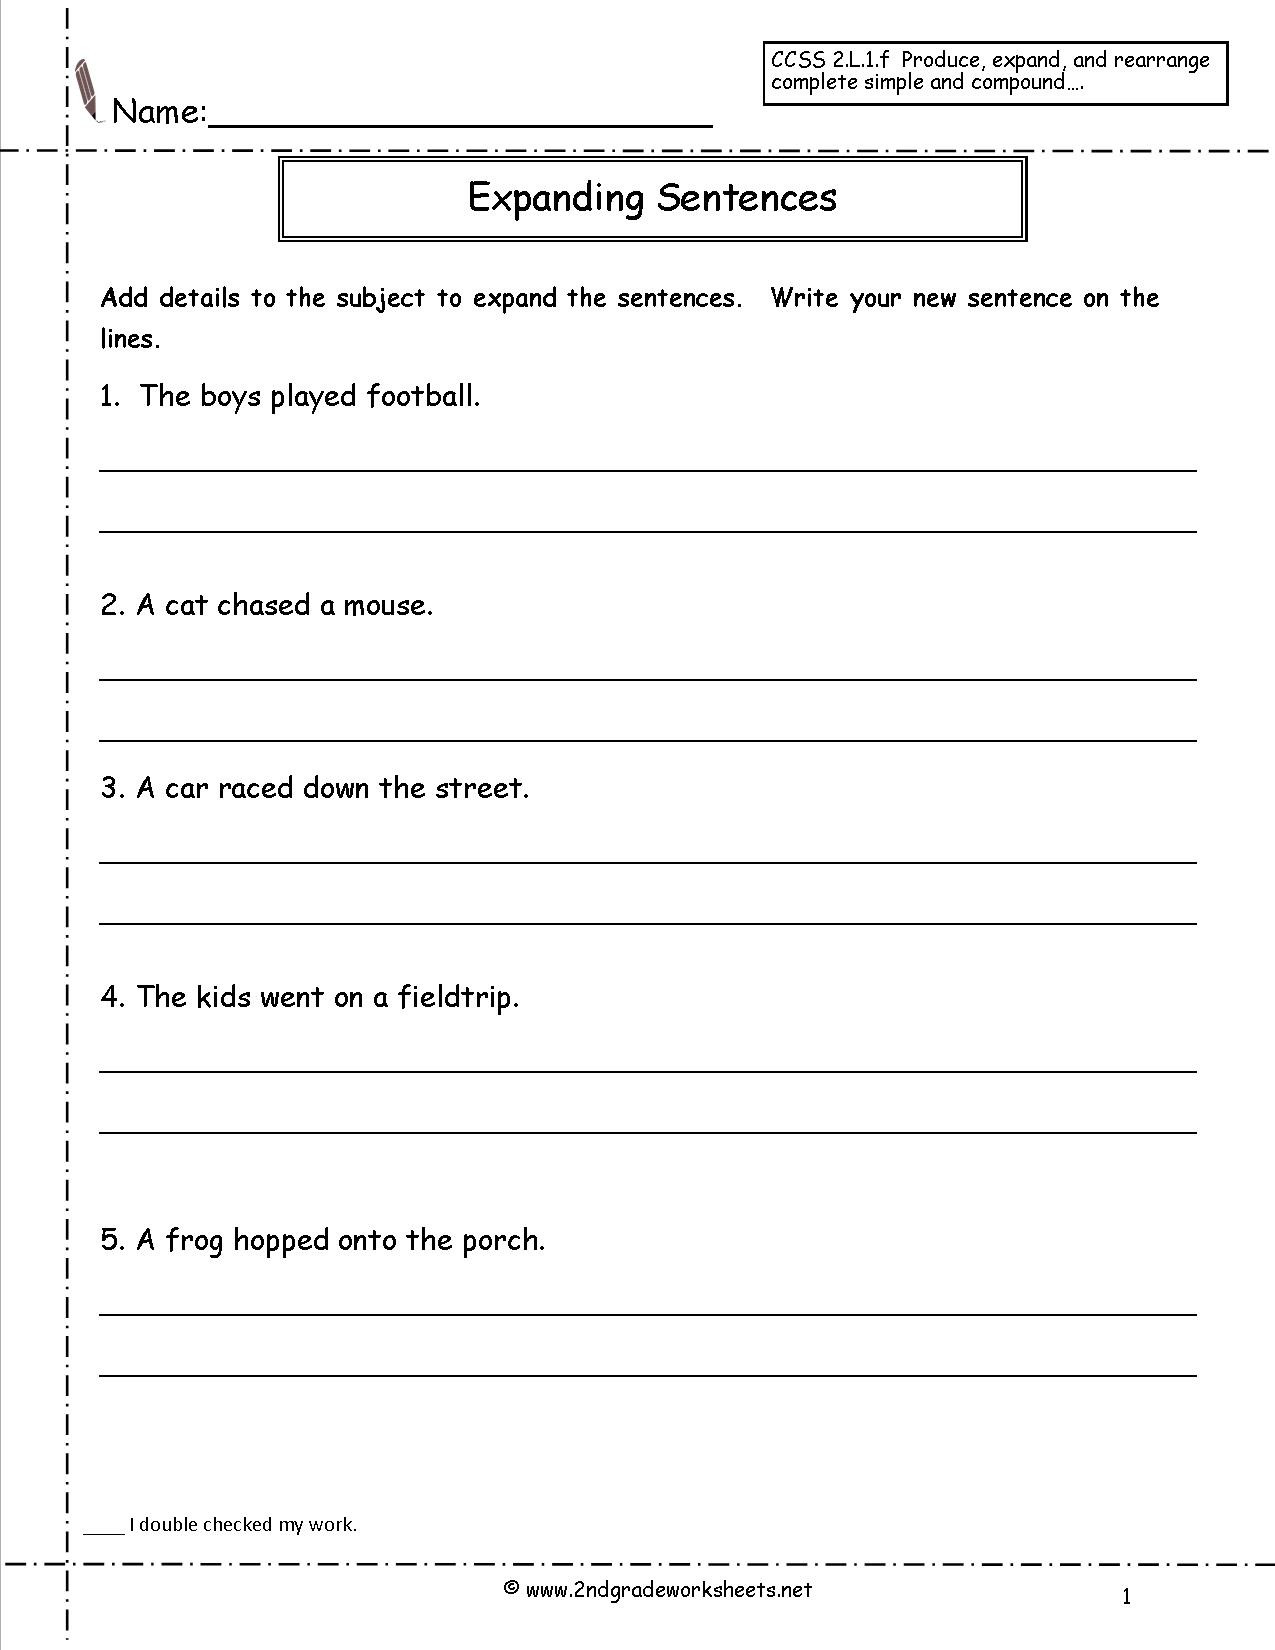 Complete Sentences Worksheets 2nd Grade Joining Words Worksheet for Grade 2